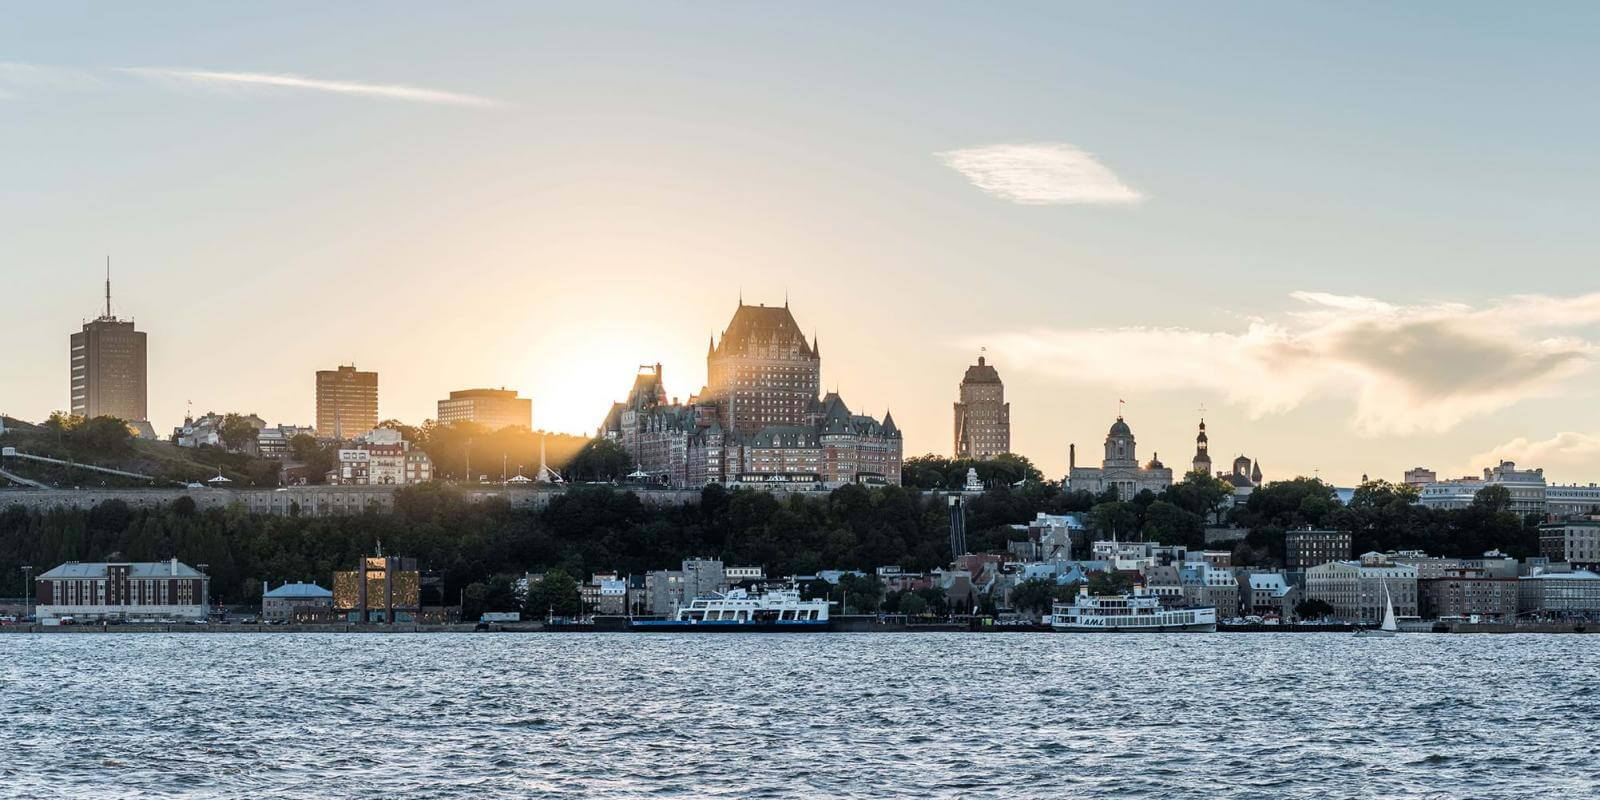 Sunset and panoramic view of Old Québec, from Lévis in summer.